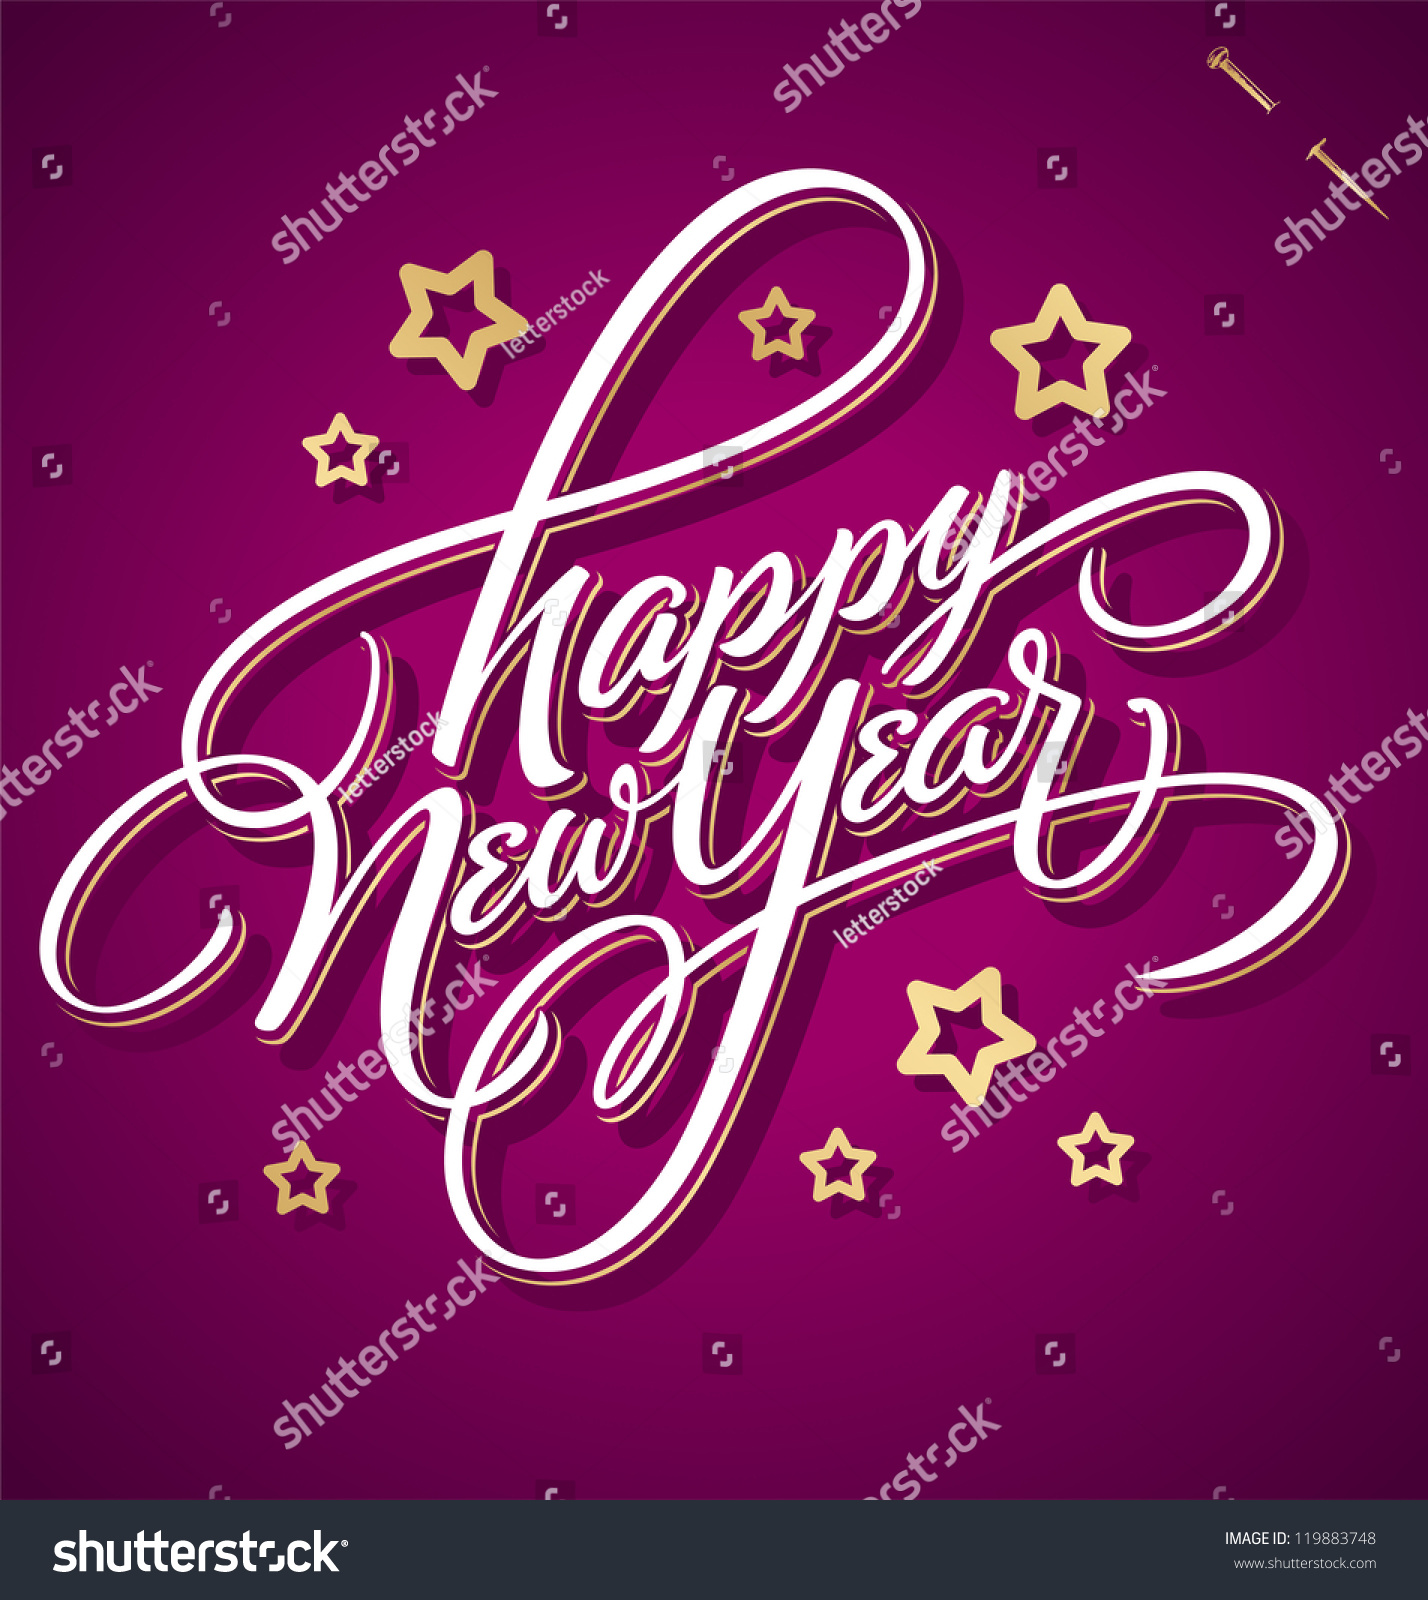 Happy new year hand lettering handmade calligraphy